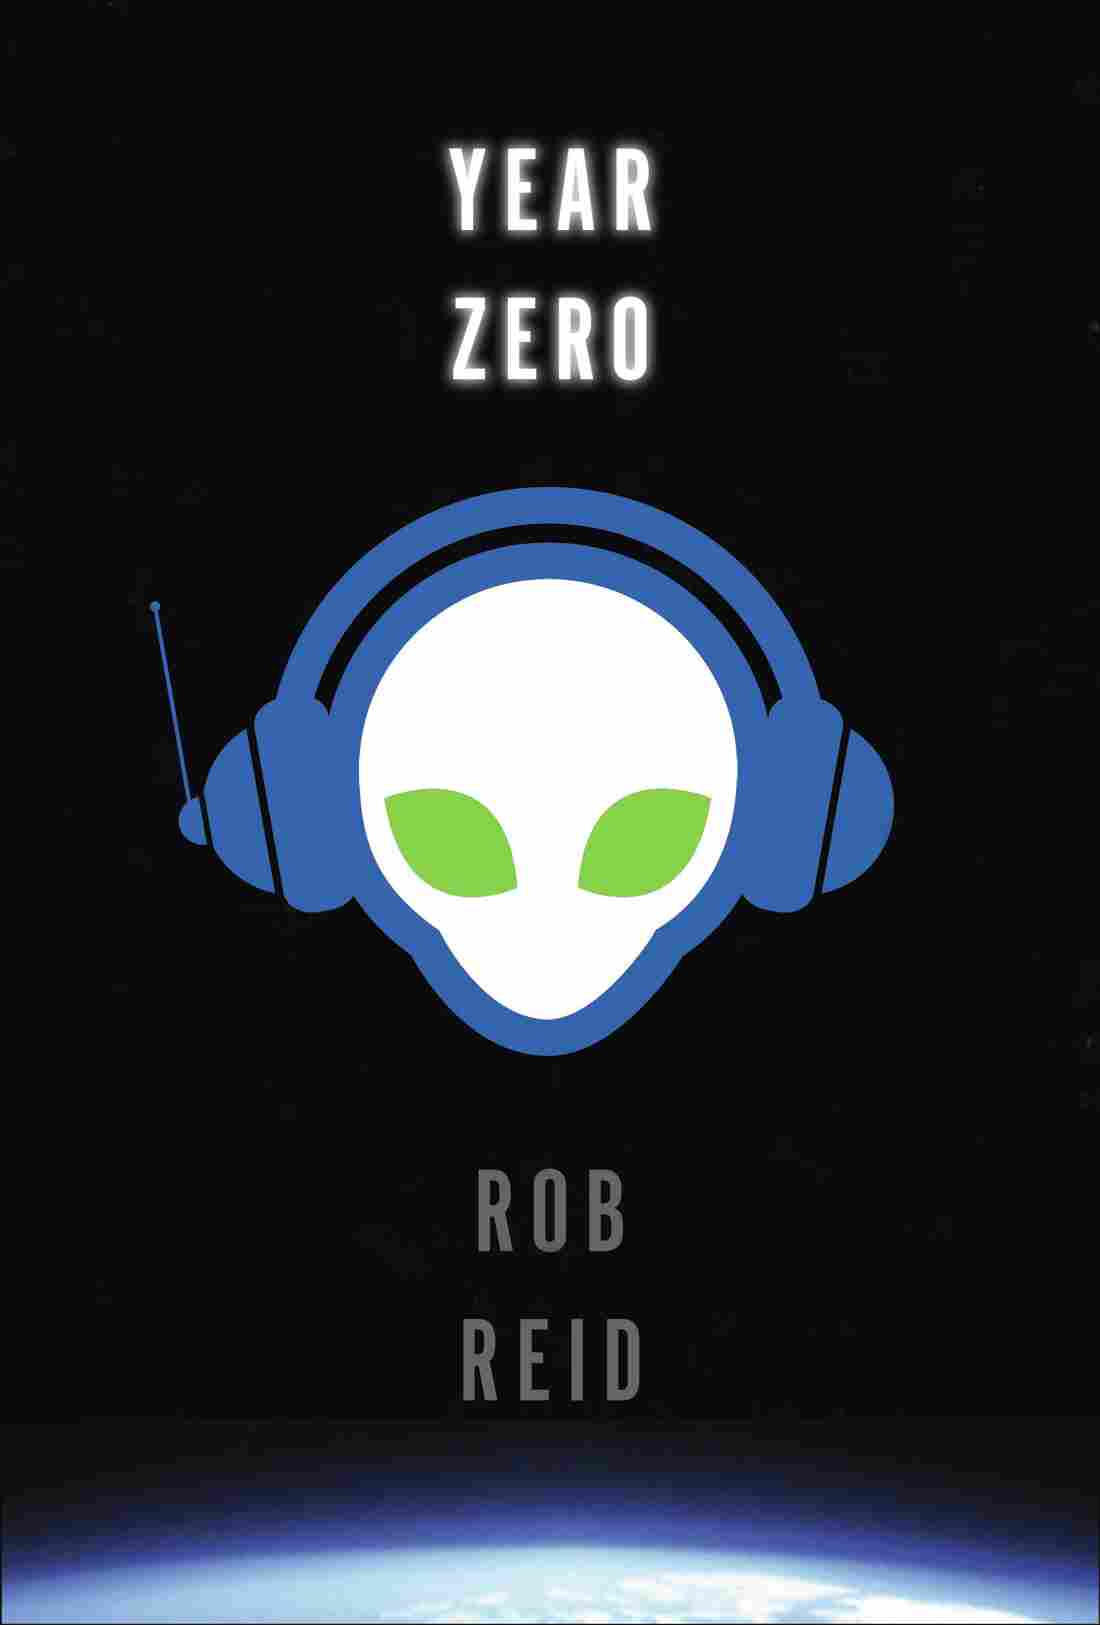 Rob Reid's smart and wacky book, Year Zero.